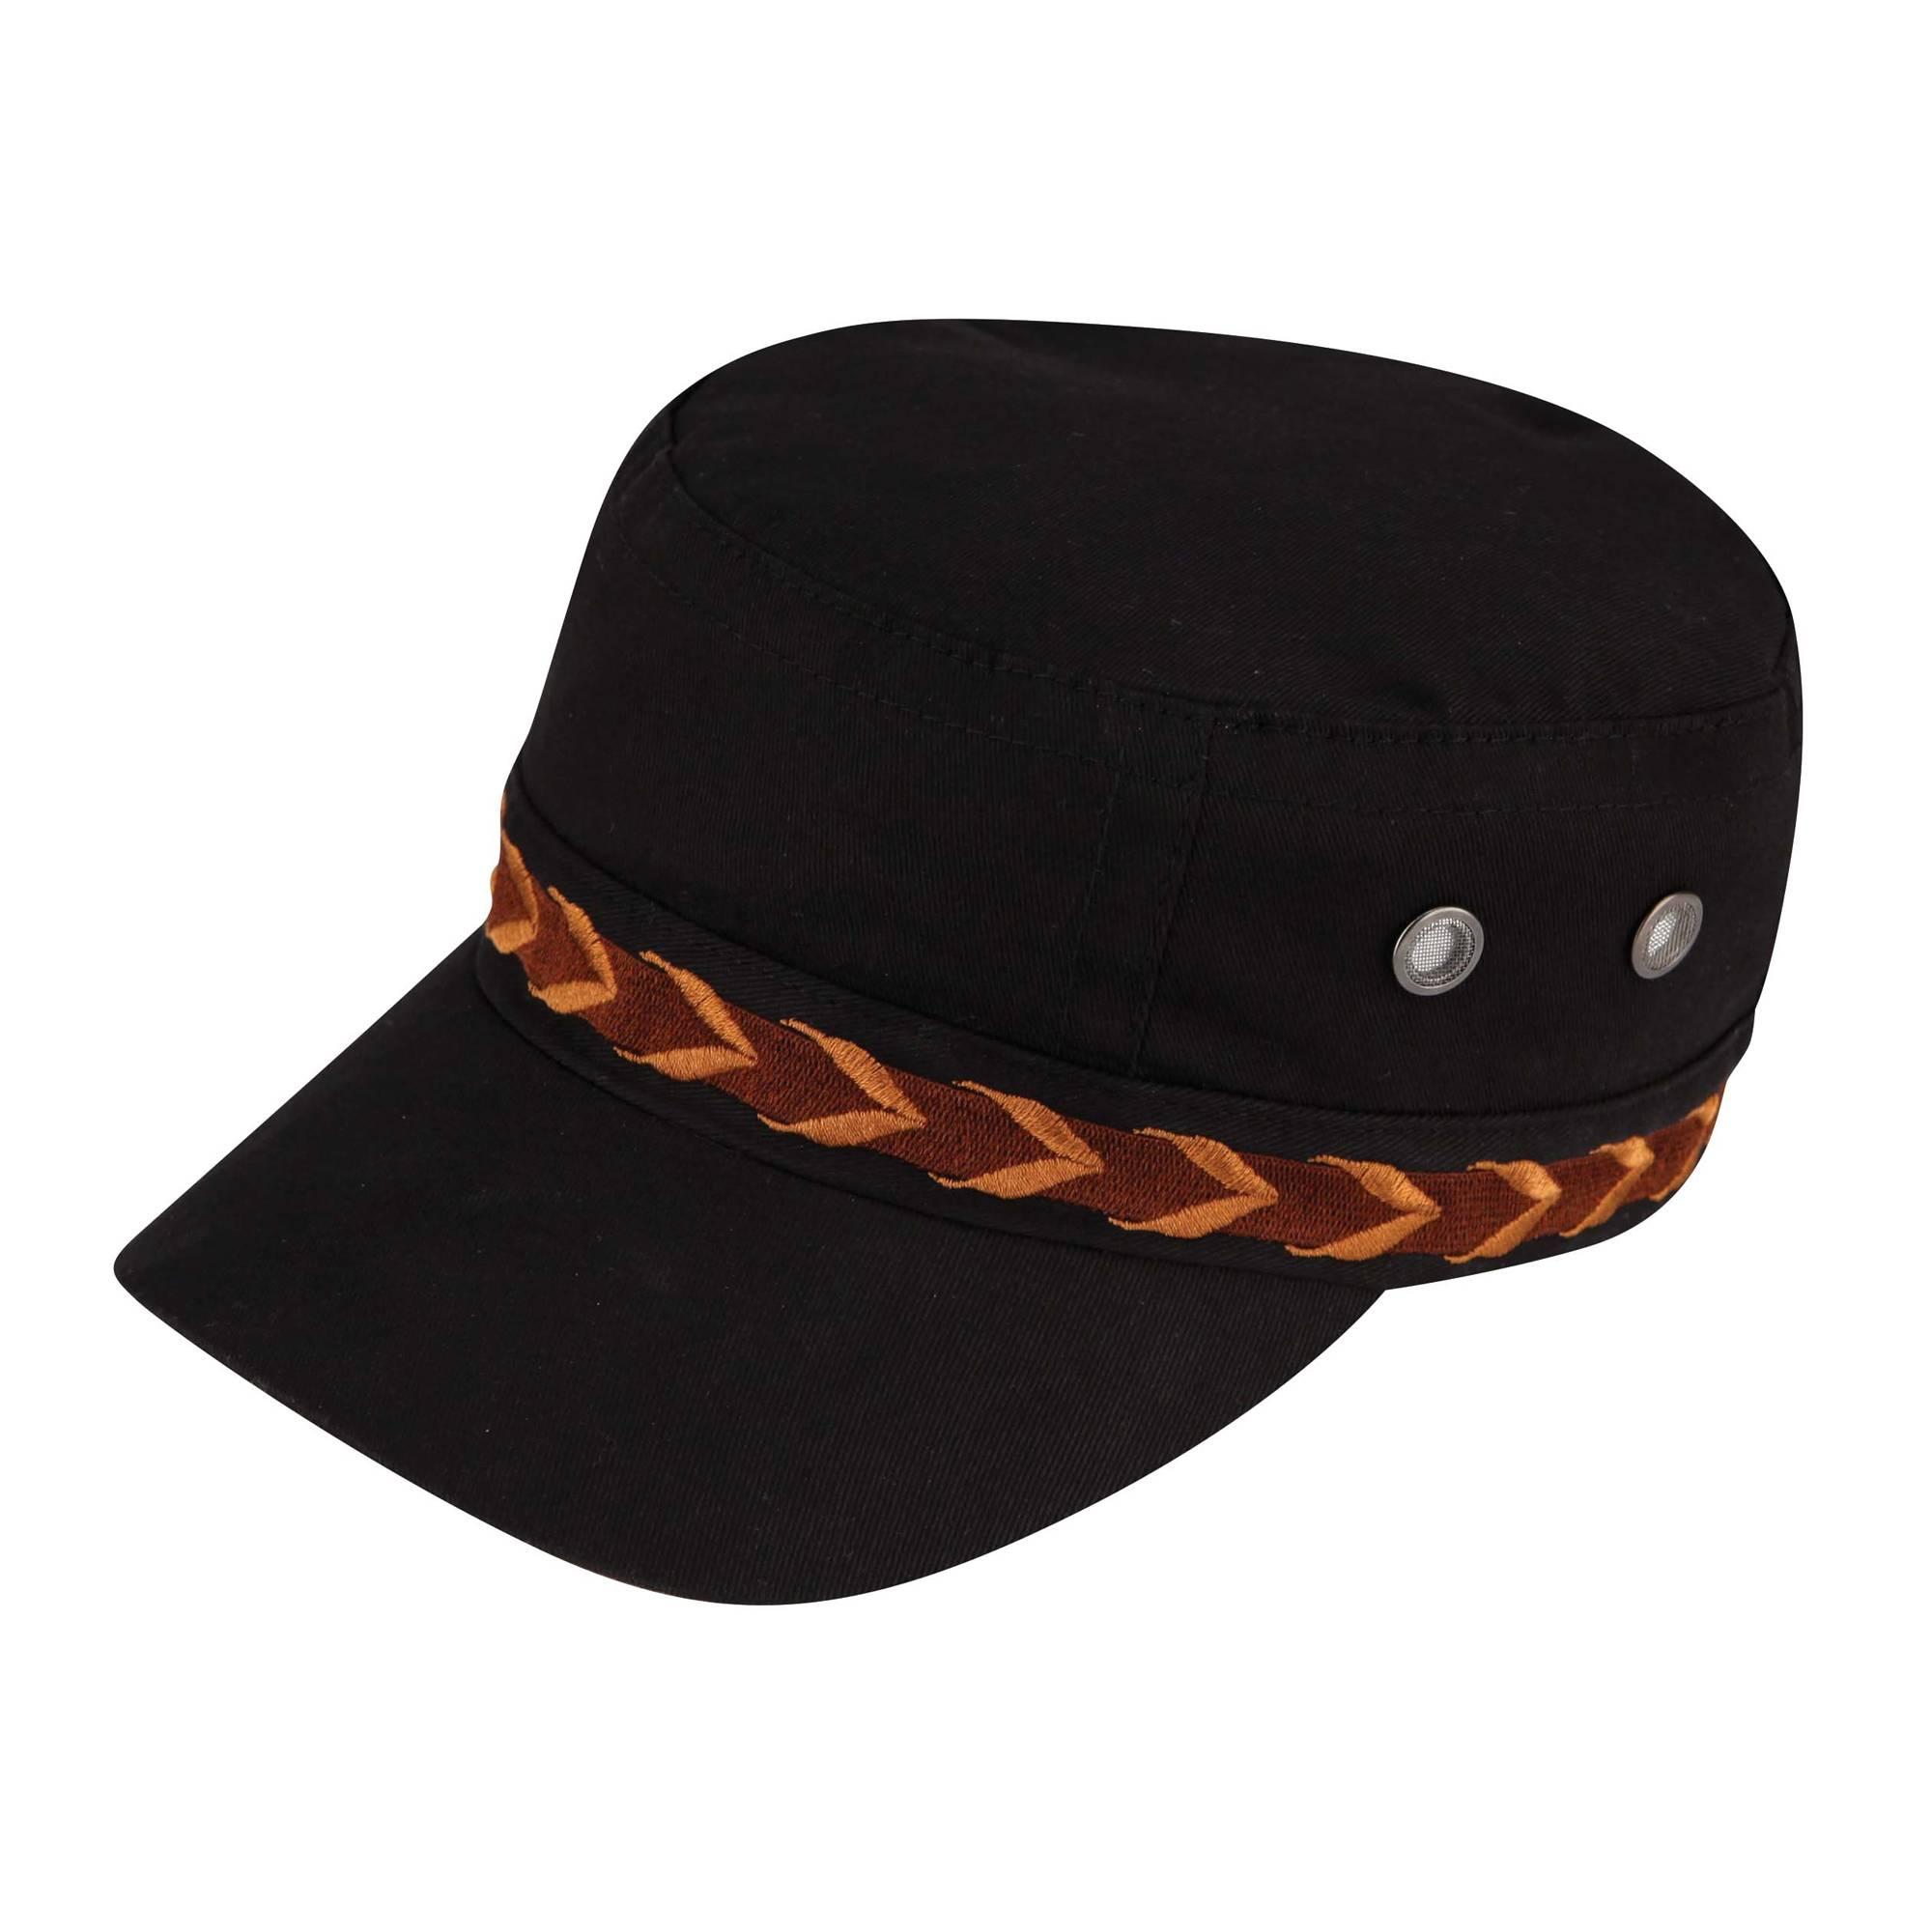 Irideon Ladies Cavalry Cap